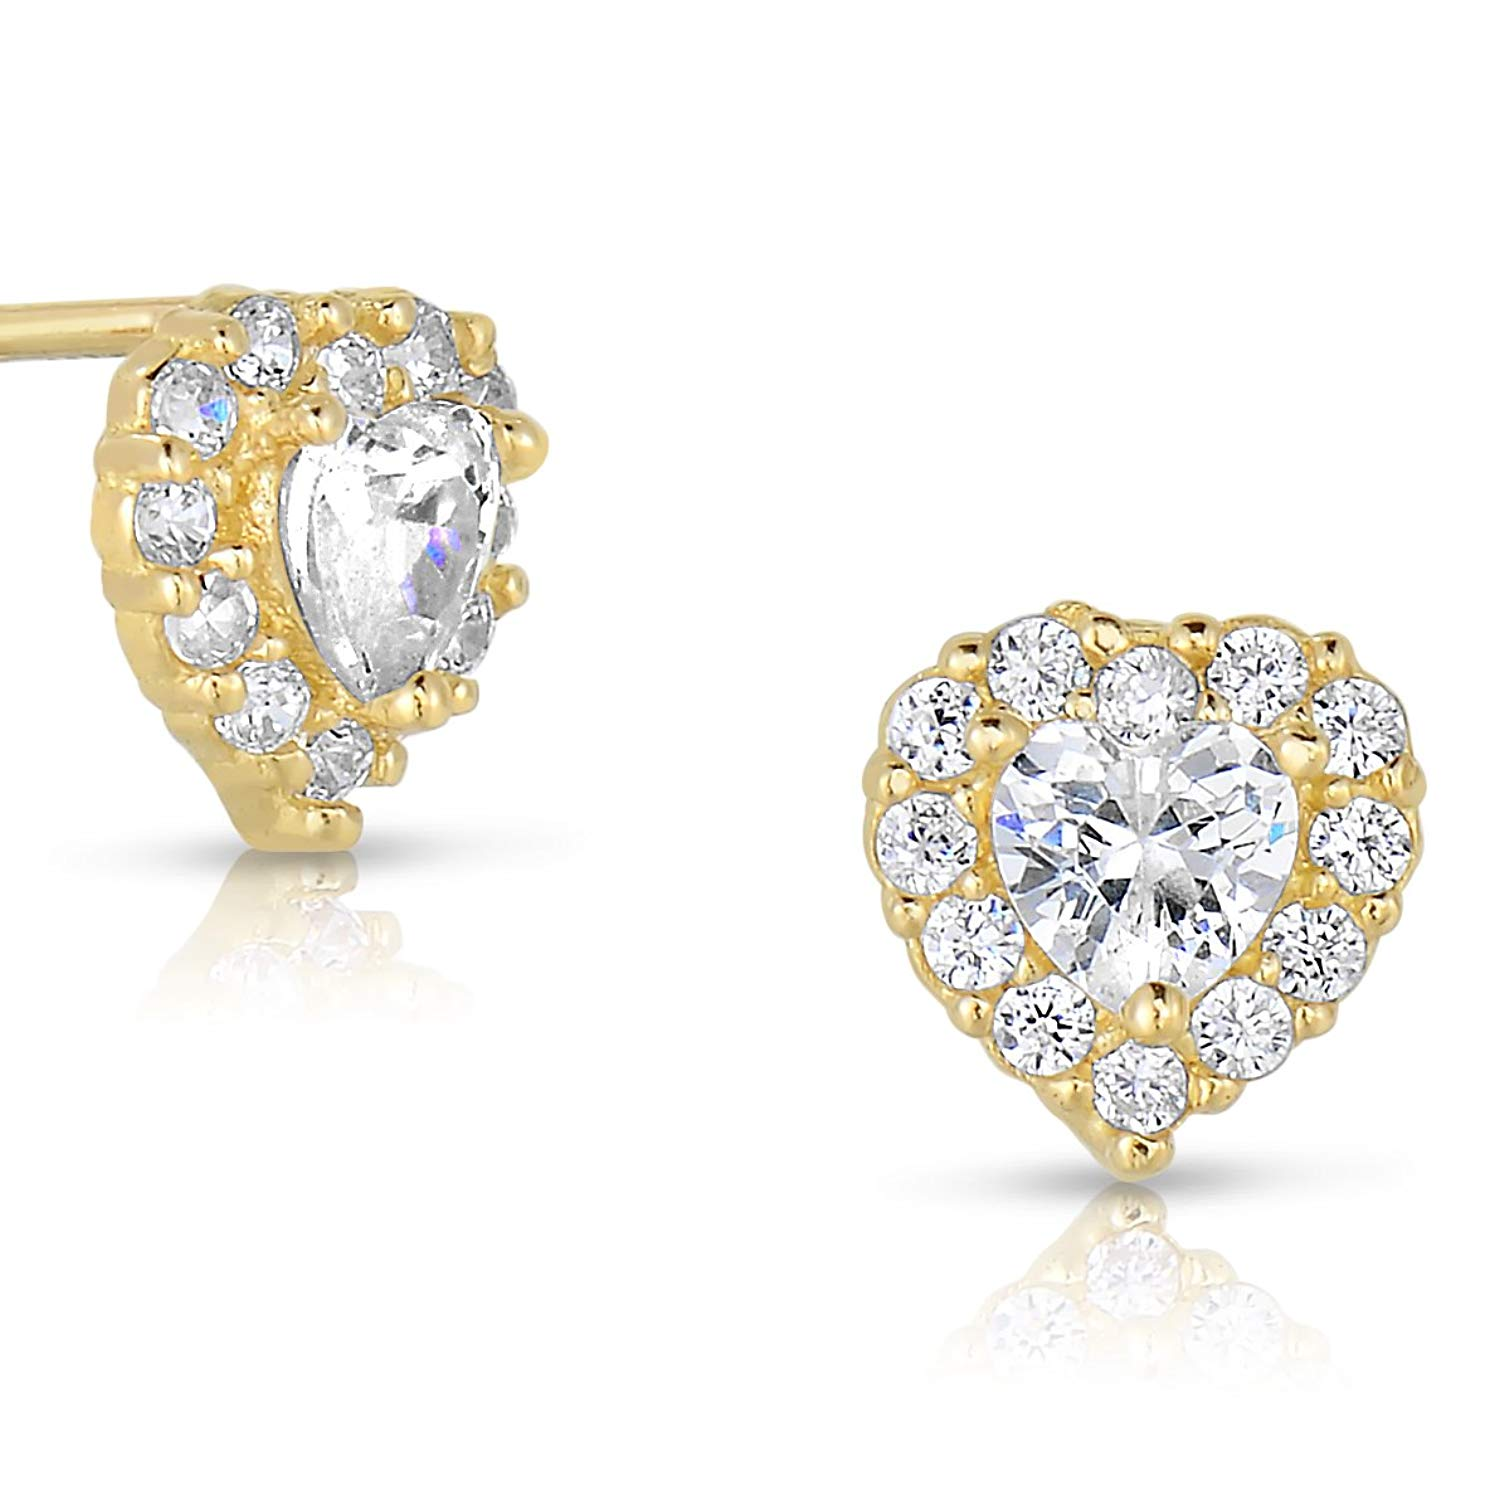 9daf5bfe8 Get Quotations · Tiny 14k Yellow Gold Heart Stud Earrings in Cubic Zirconia  CZ with Screw Backs